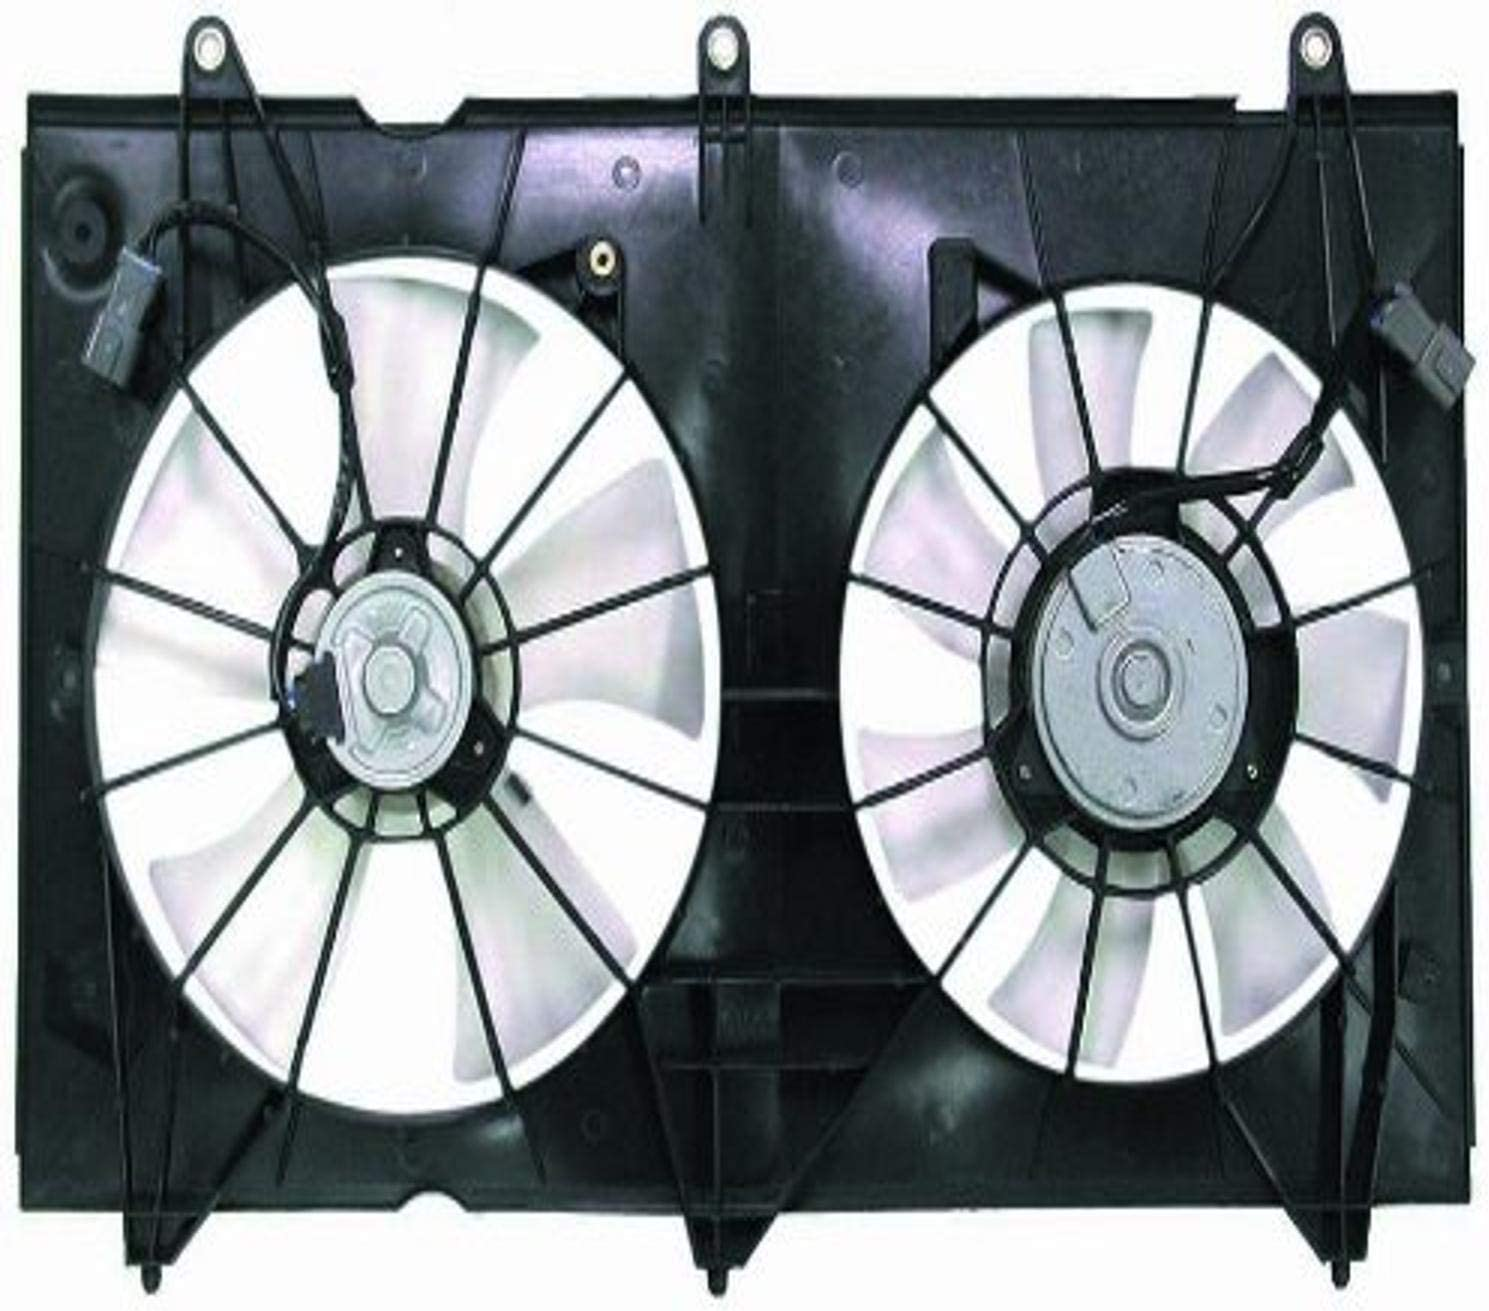 DEPO 317-55018-000 Replacement Engine Cooling Fan Assembly (This product is an aftermarket product. It is not created or sold by the OE car company)